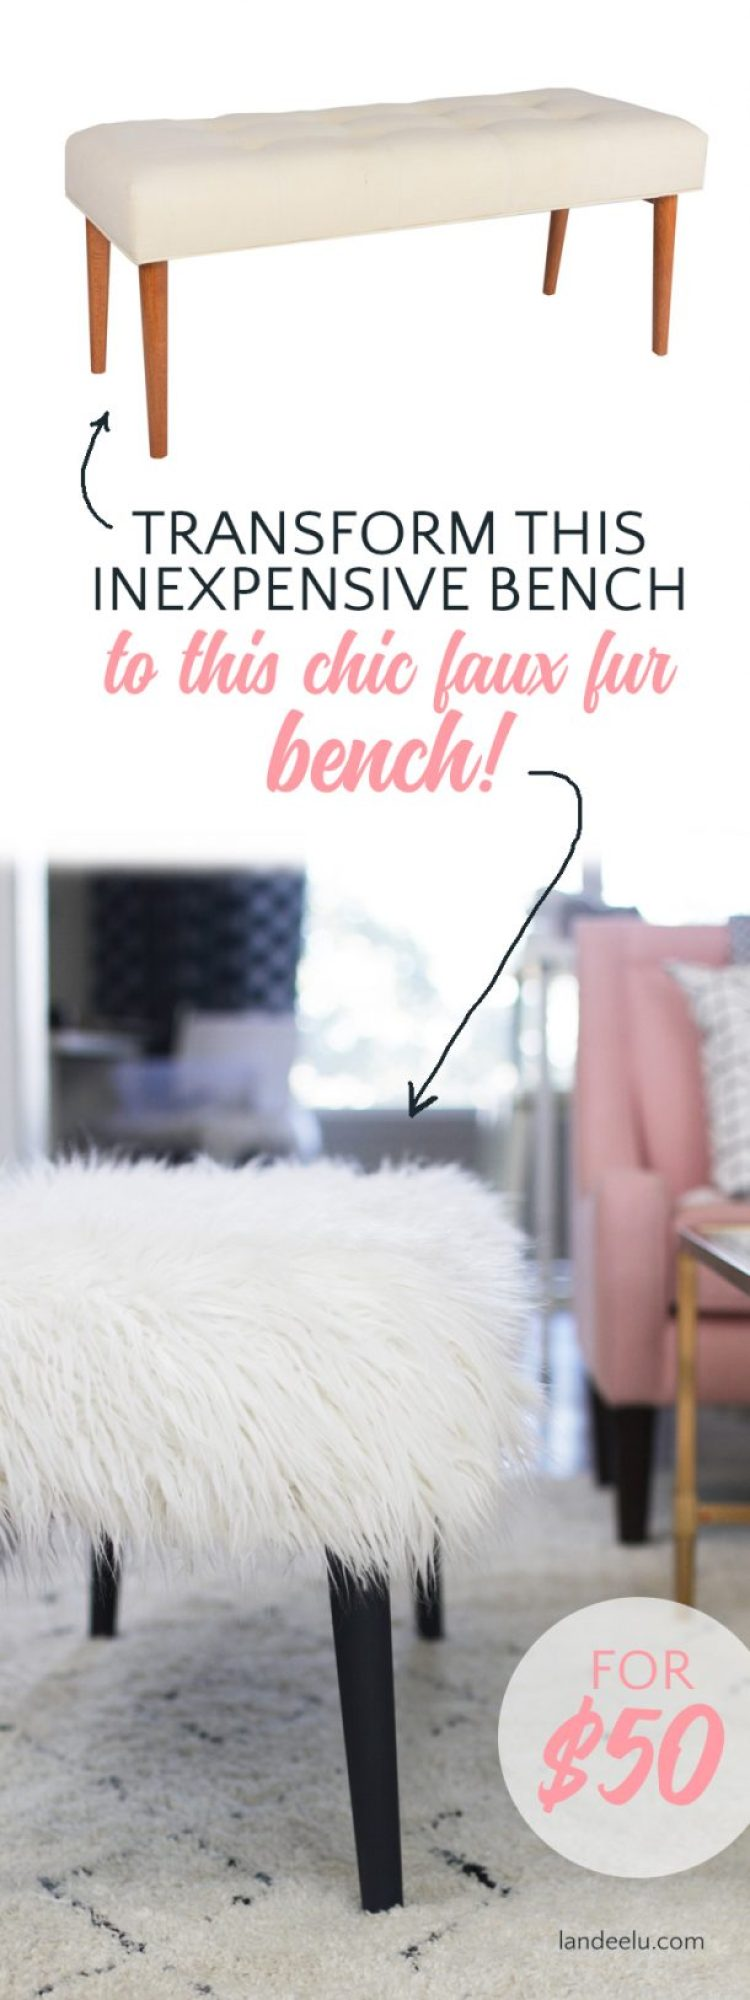 Easily transform an inexpensive upholstered bench into a chic faux fur bench with this DIY bench tutorial!